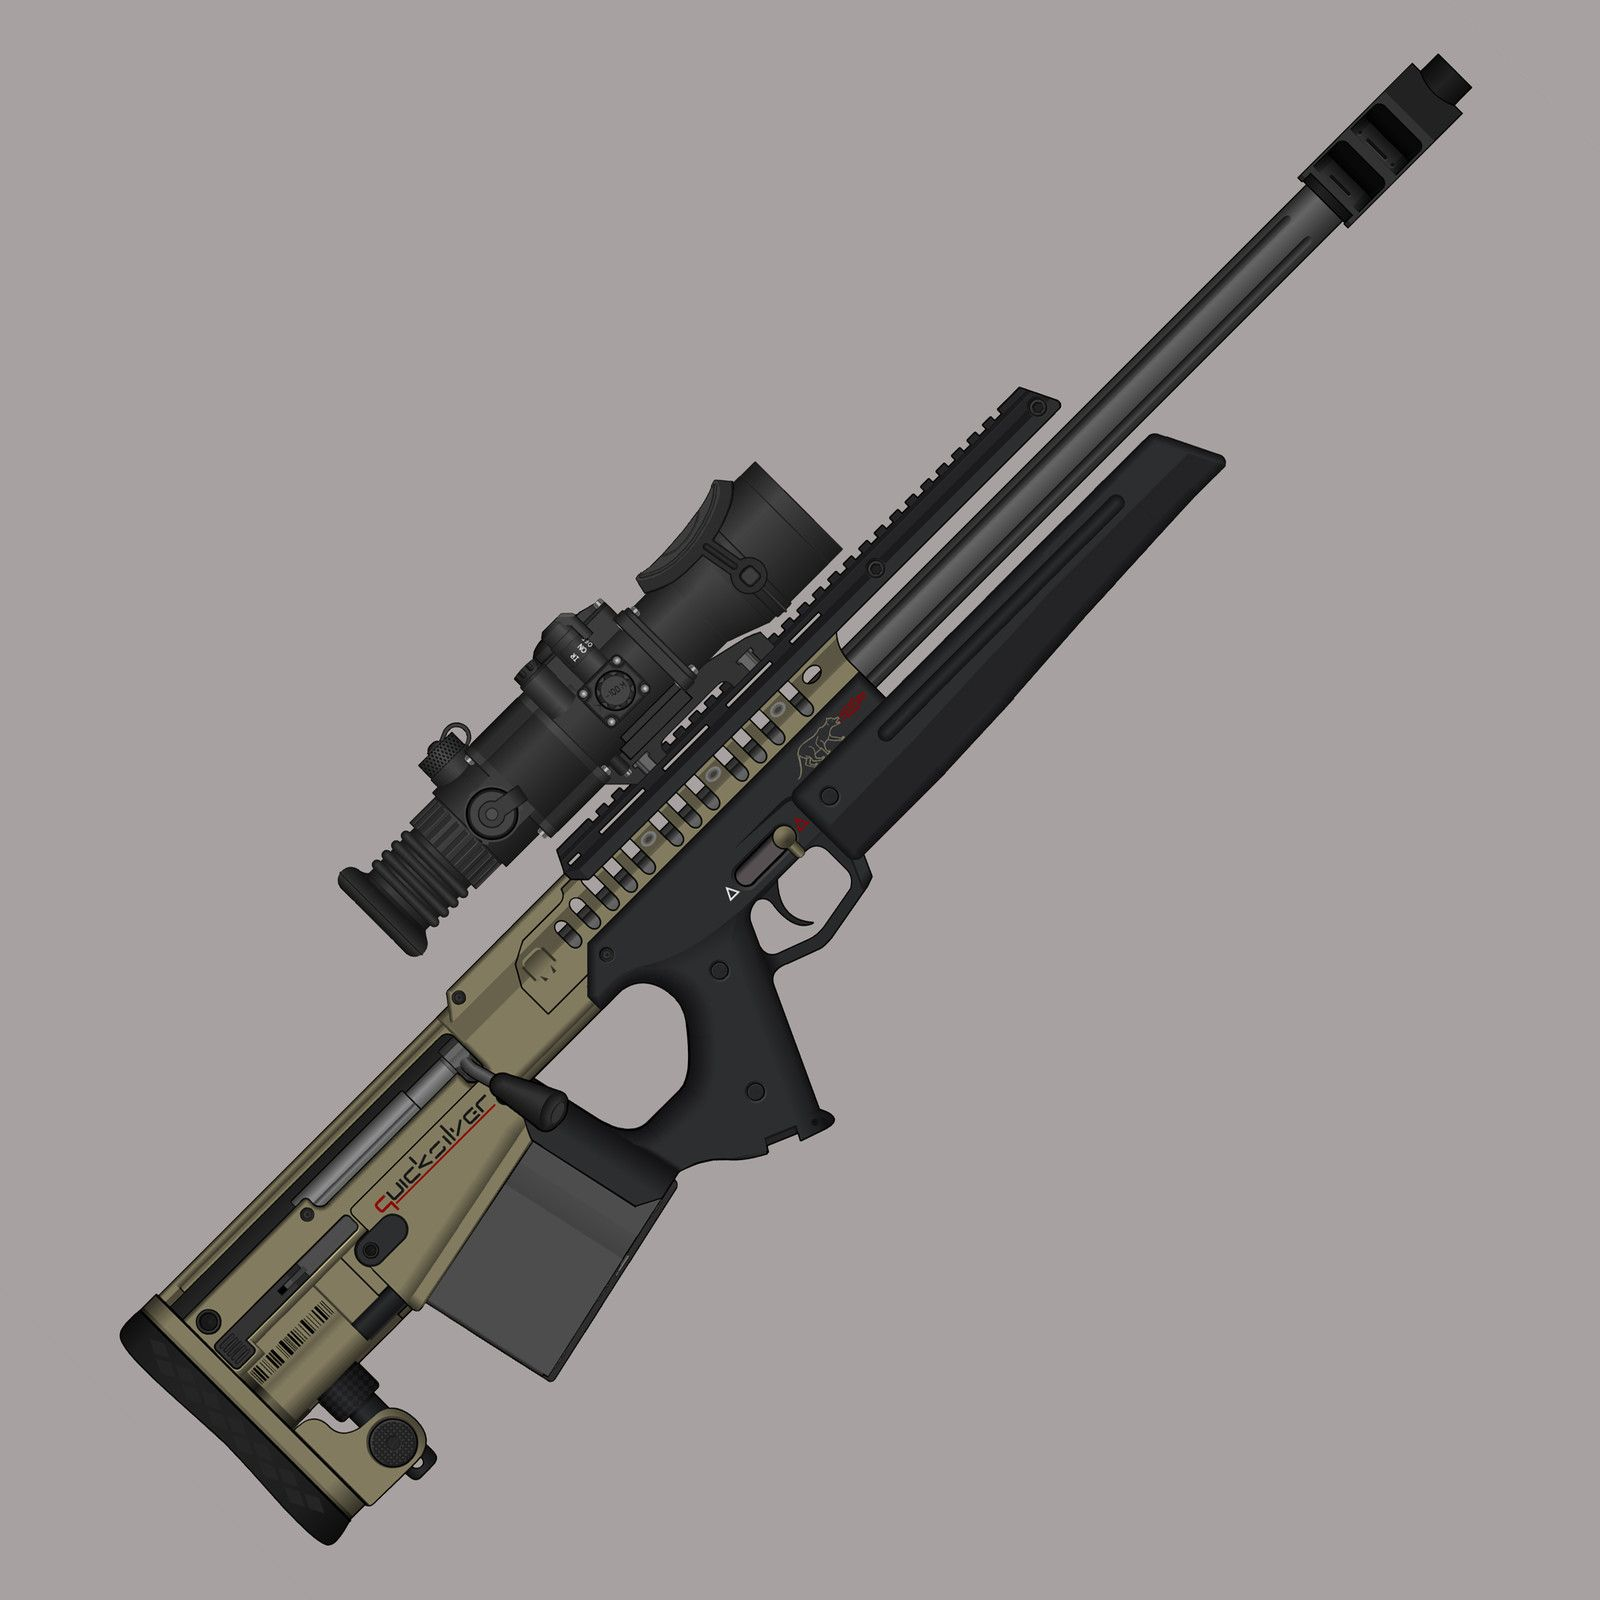 Pin on weapons and items